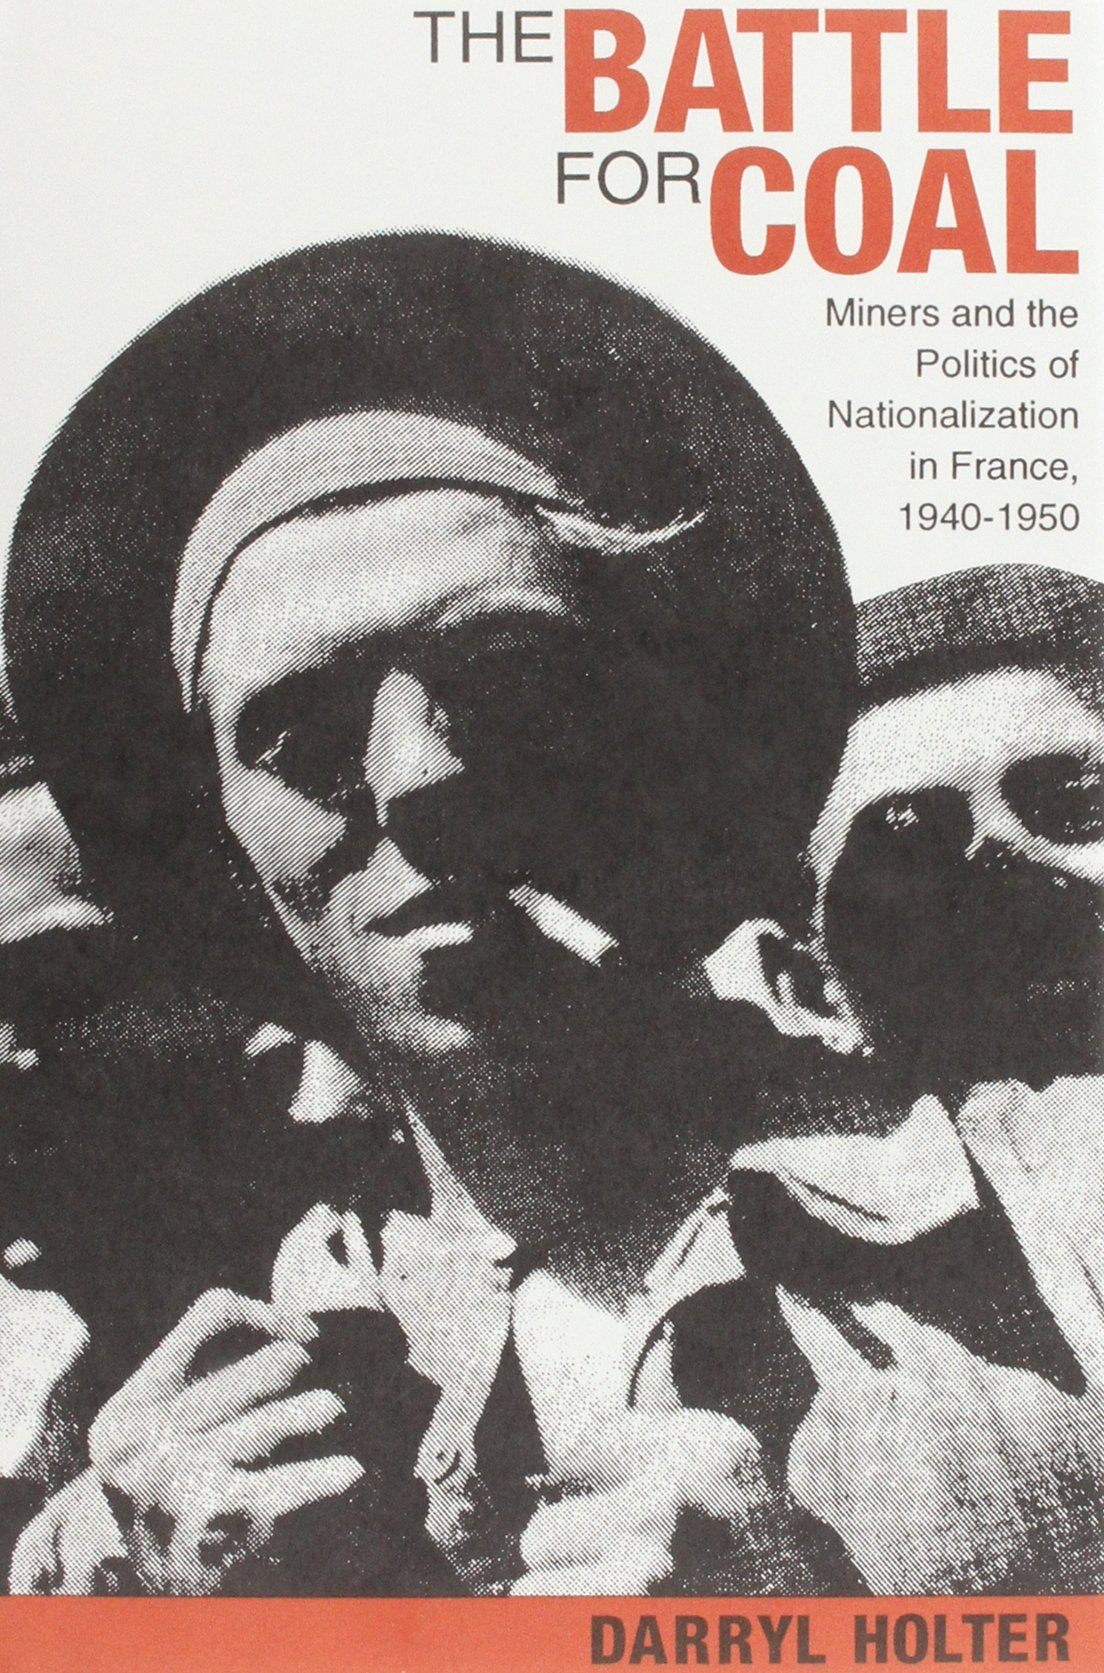 The Battle for Coal: Miners and the Politics of Nationalization in France, 1940-1950